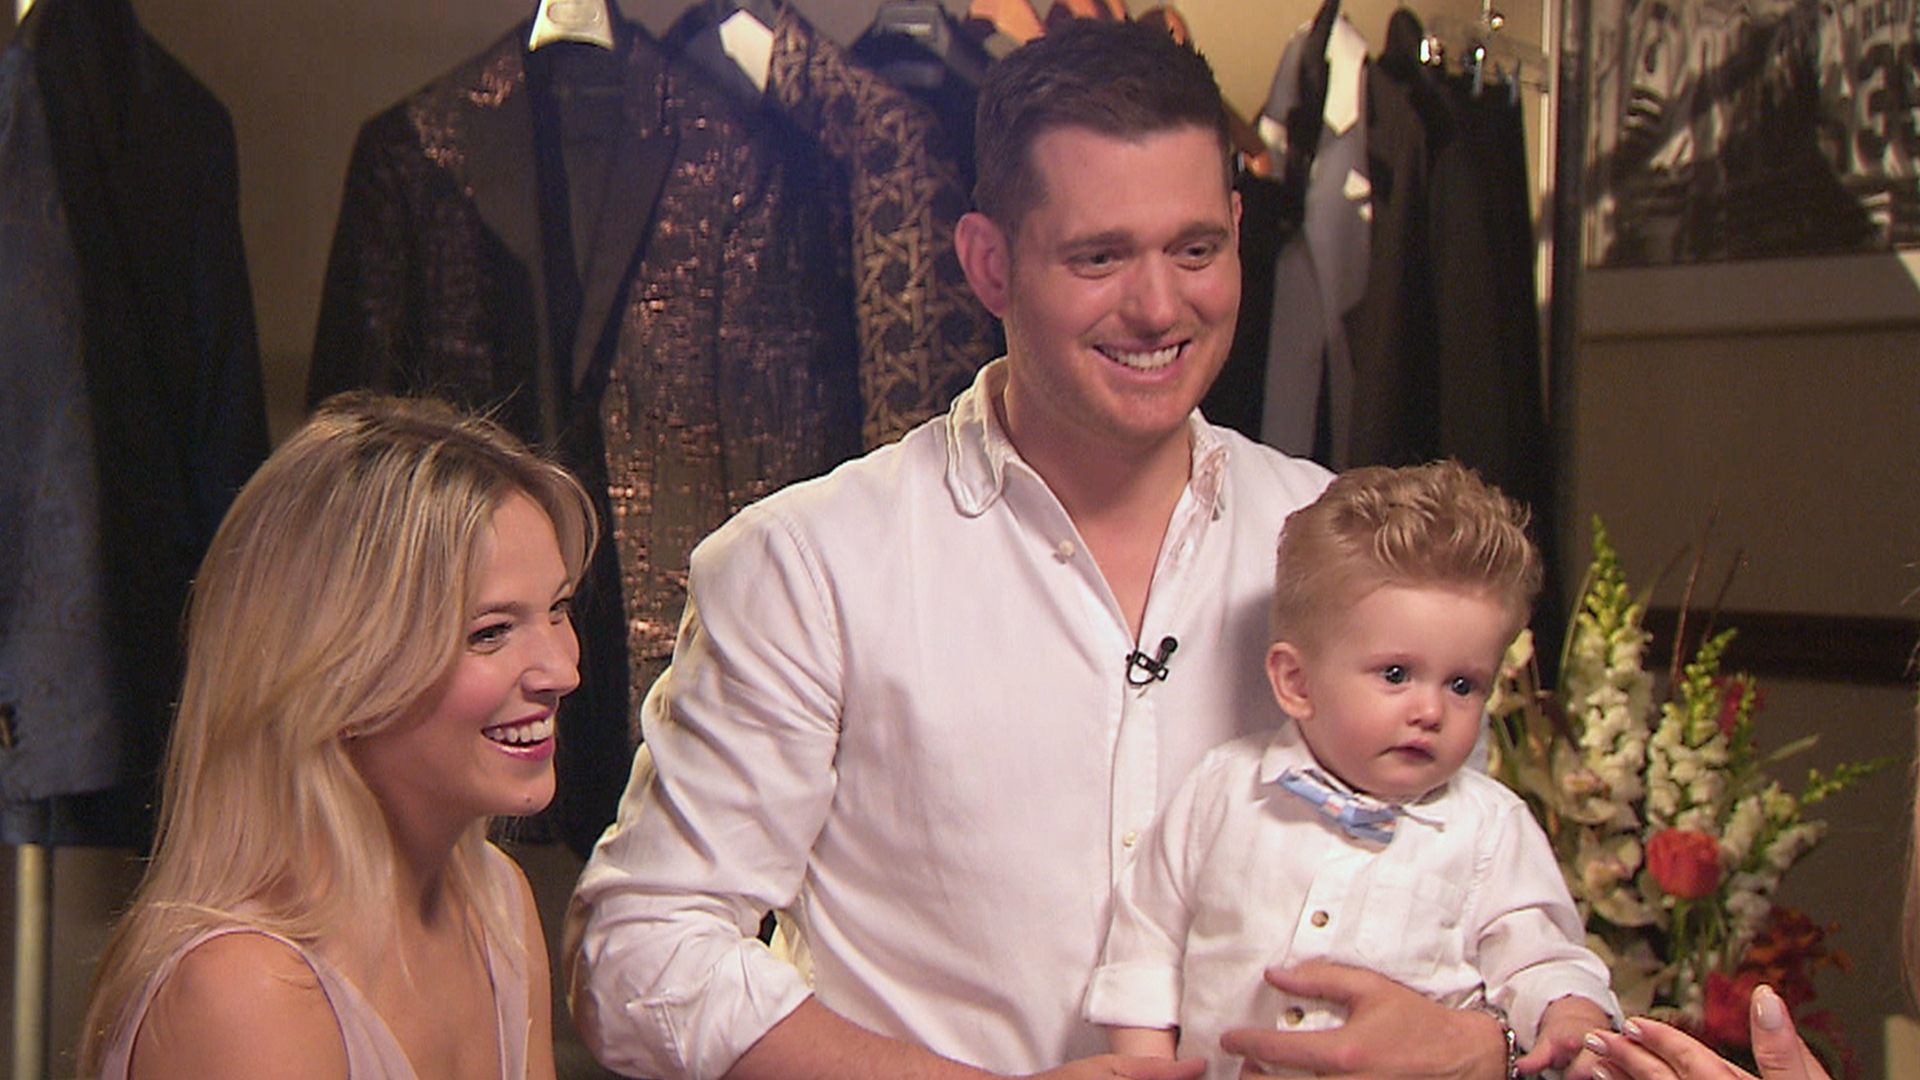 Michael Bublé accompanied by his wife Luisana Lopilato and their son Noah. Photo credit:  BCNN 1WP